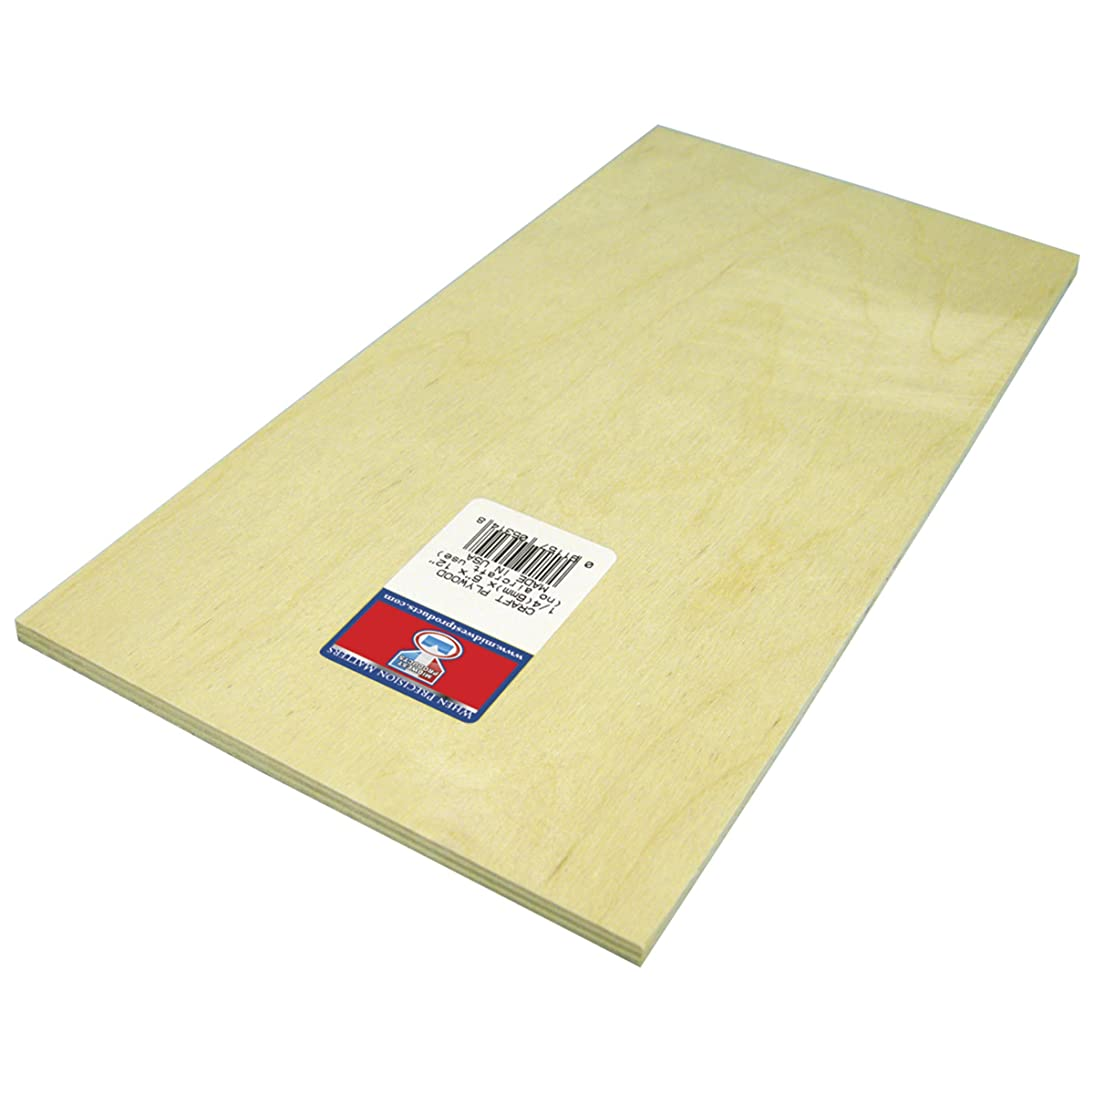 Midwest Products 5314 Craft Plywood Sheet, 6 x 12 x 0.25 Inches